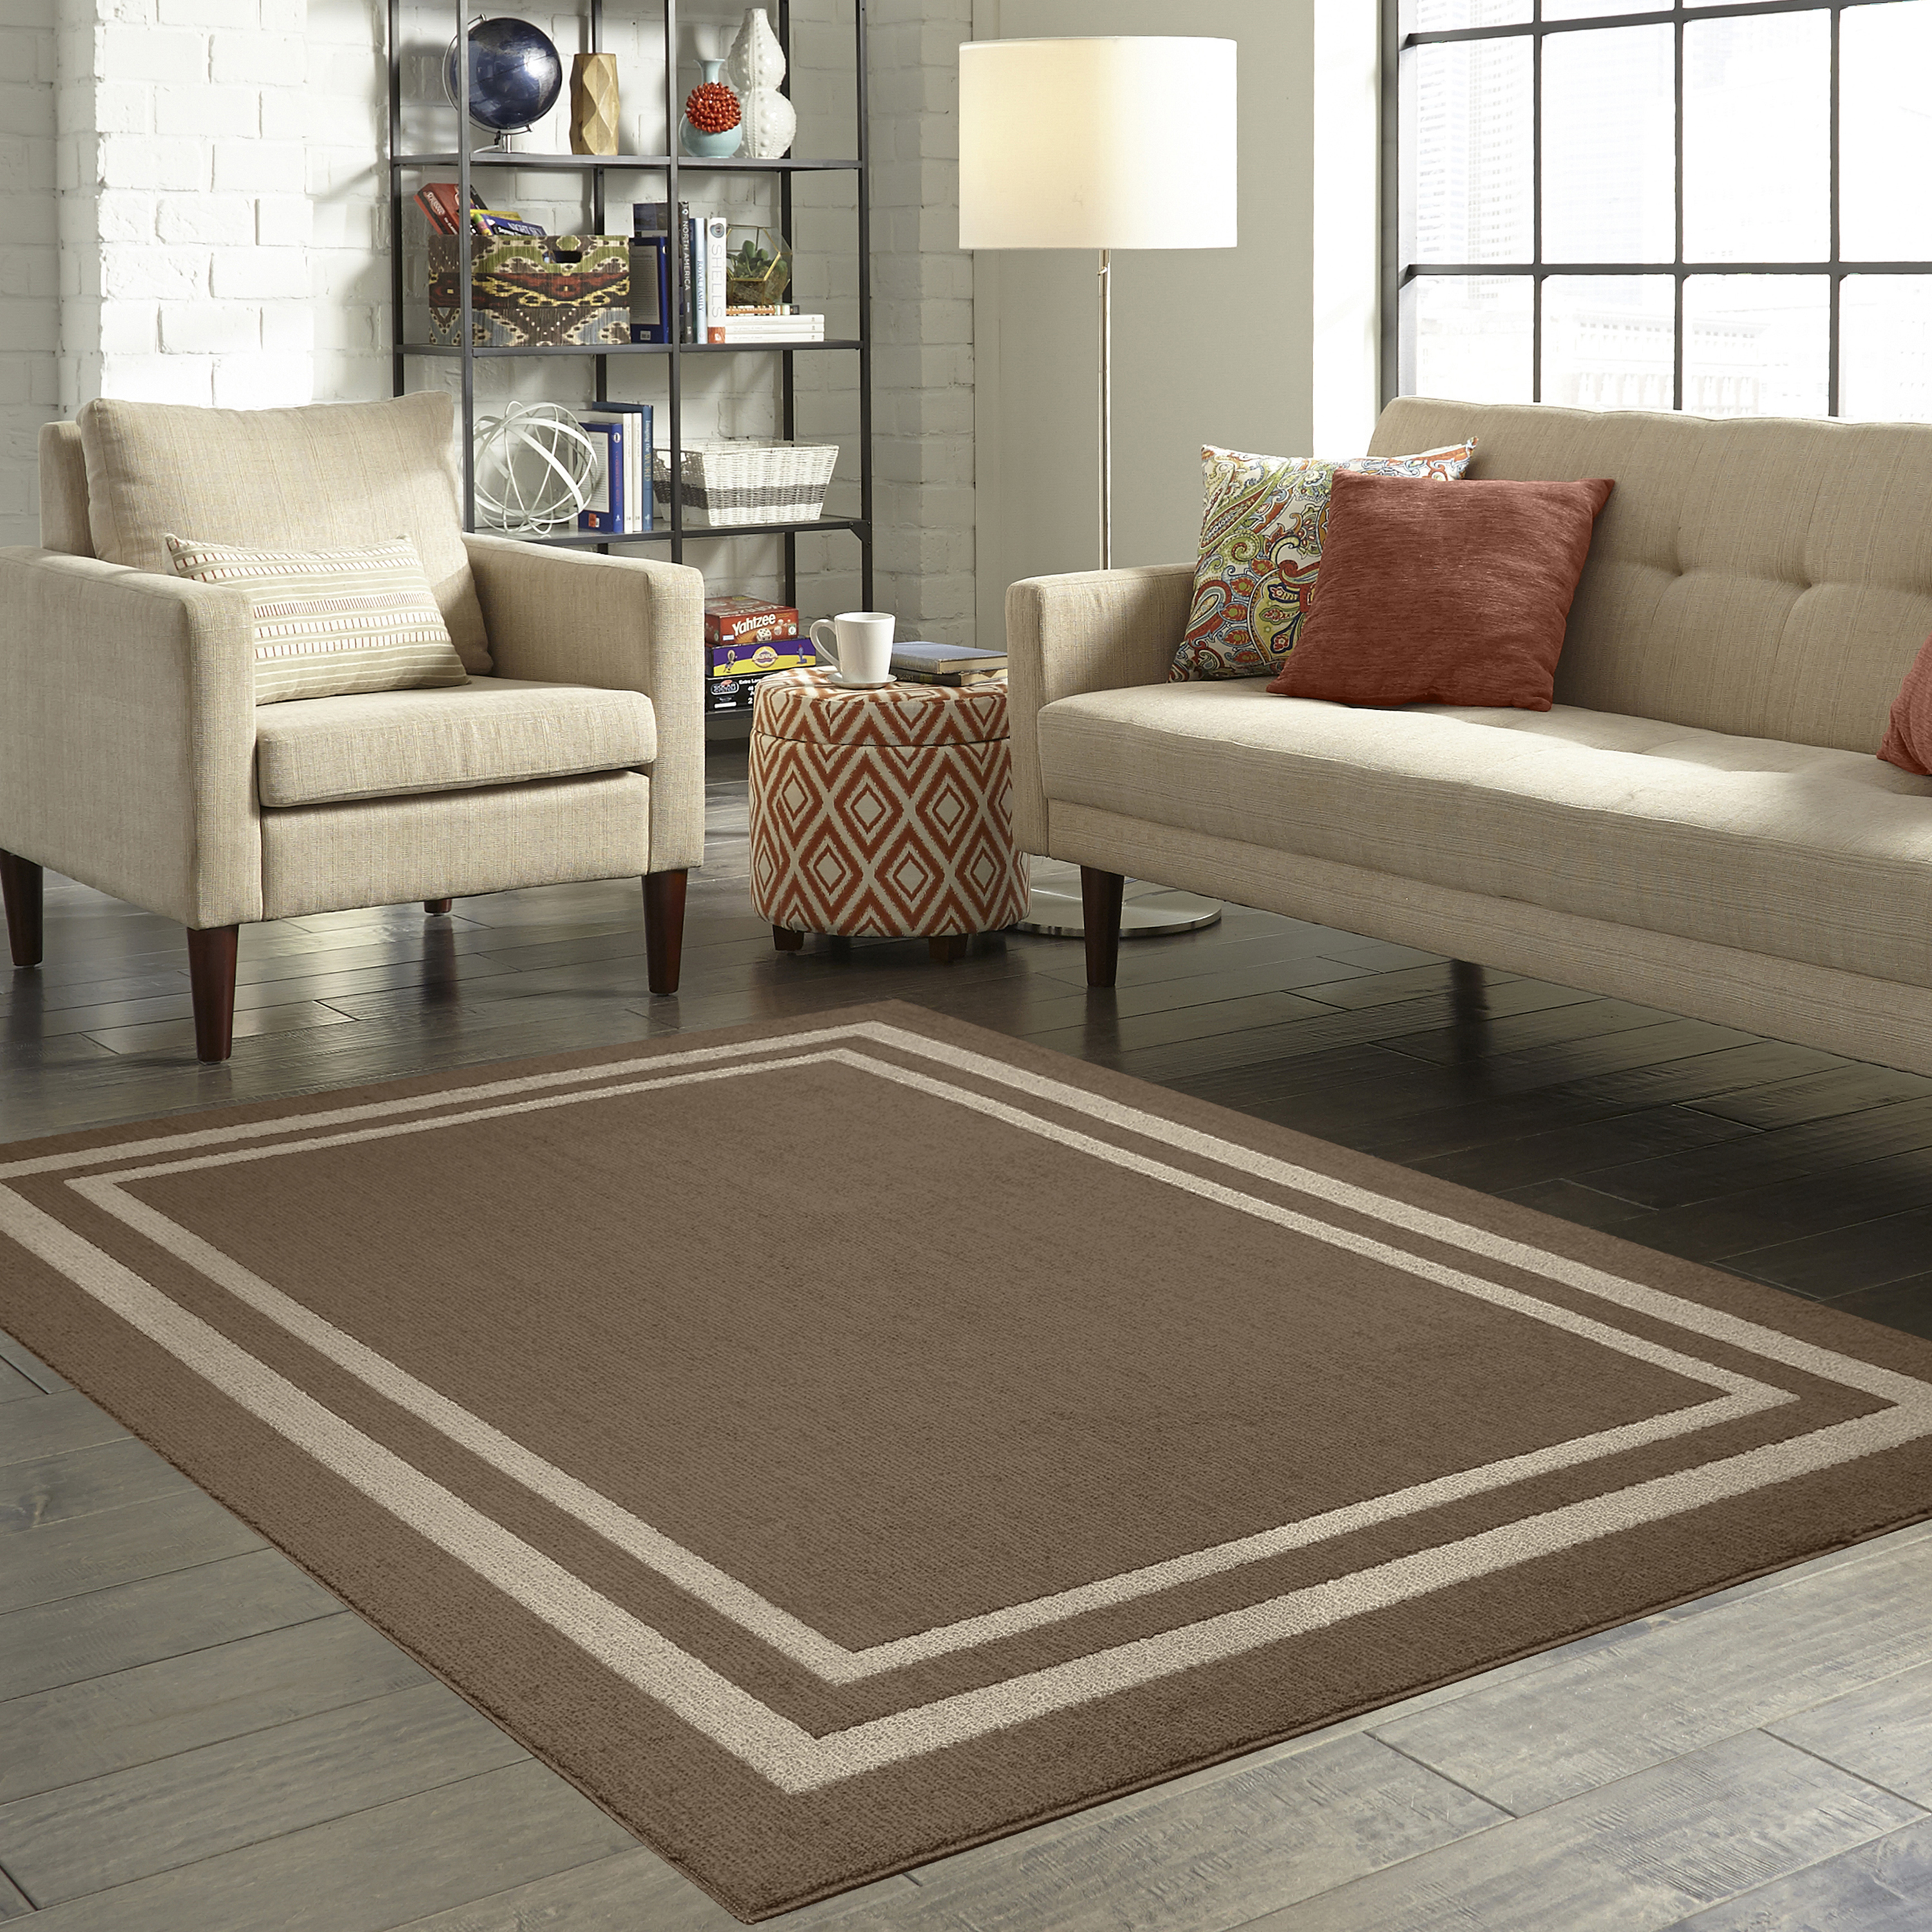 Mainstays Frame Border Area Rugs or Runner by Maples Industries, Inc.